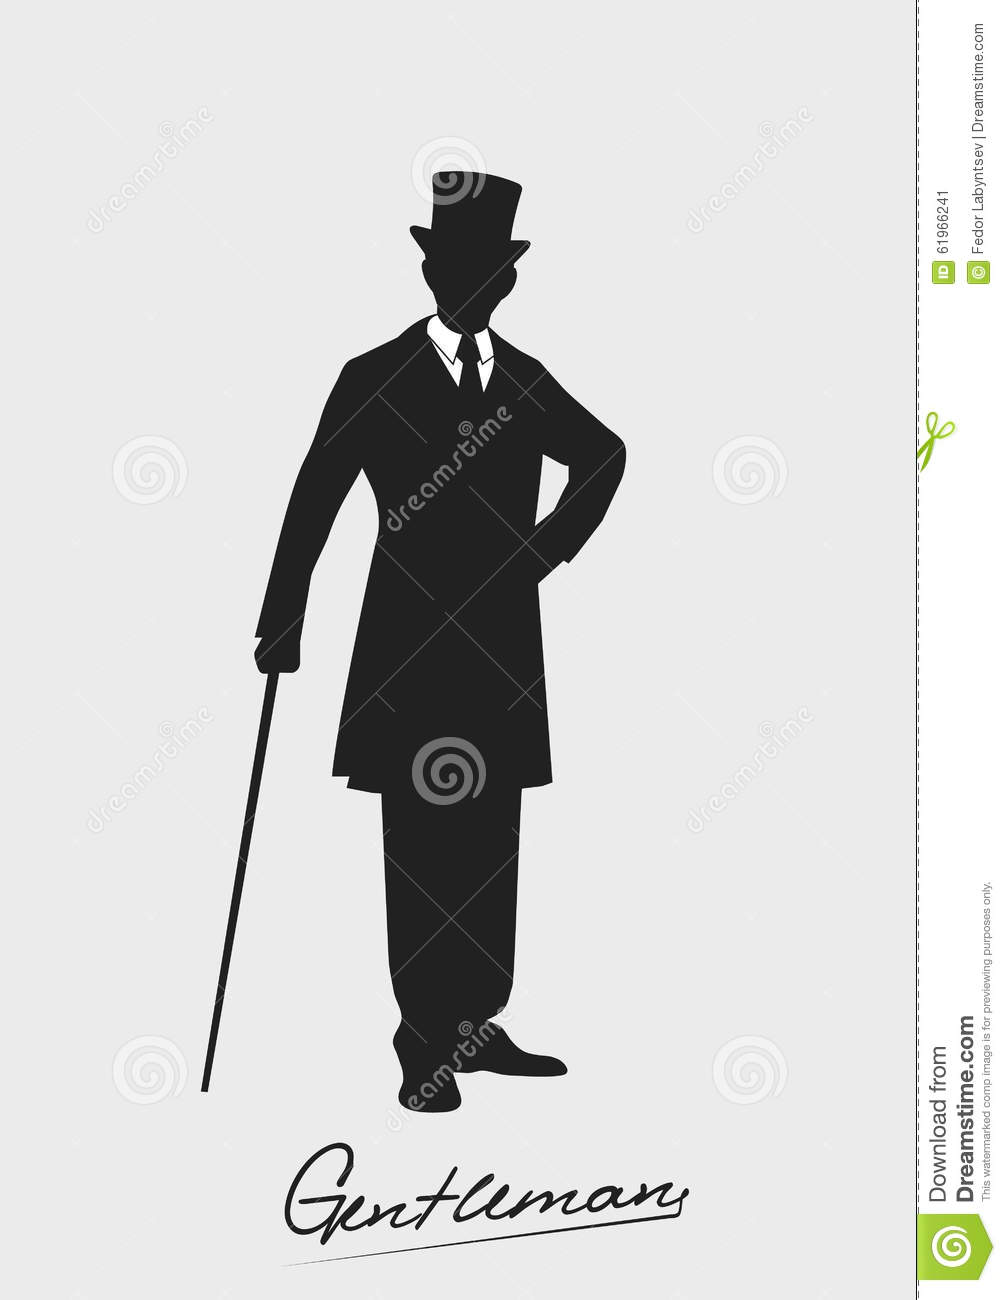 Silhouette Of A Gentleman In A Tuxedo Stock Vector - Image ...